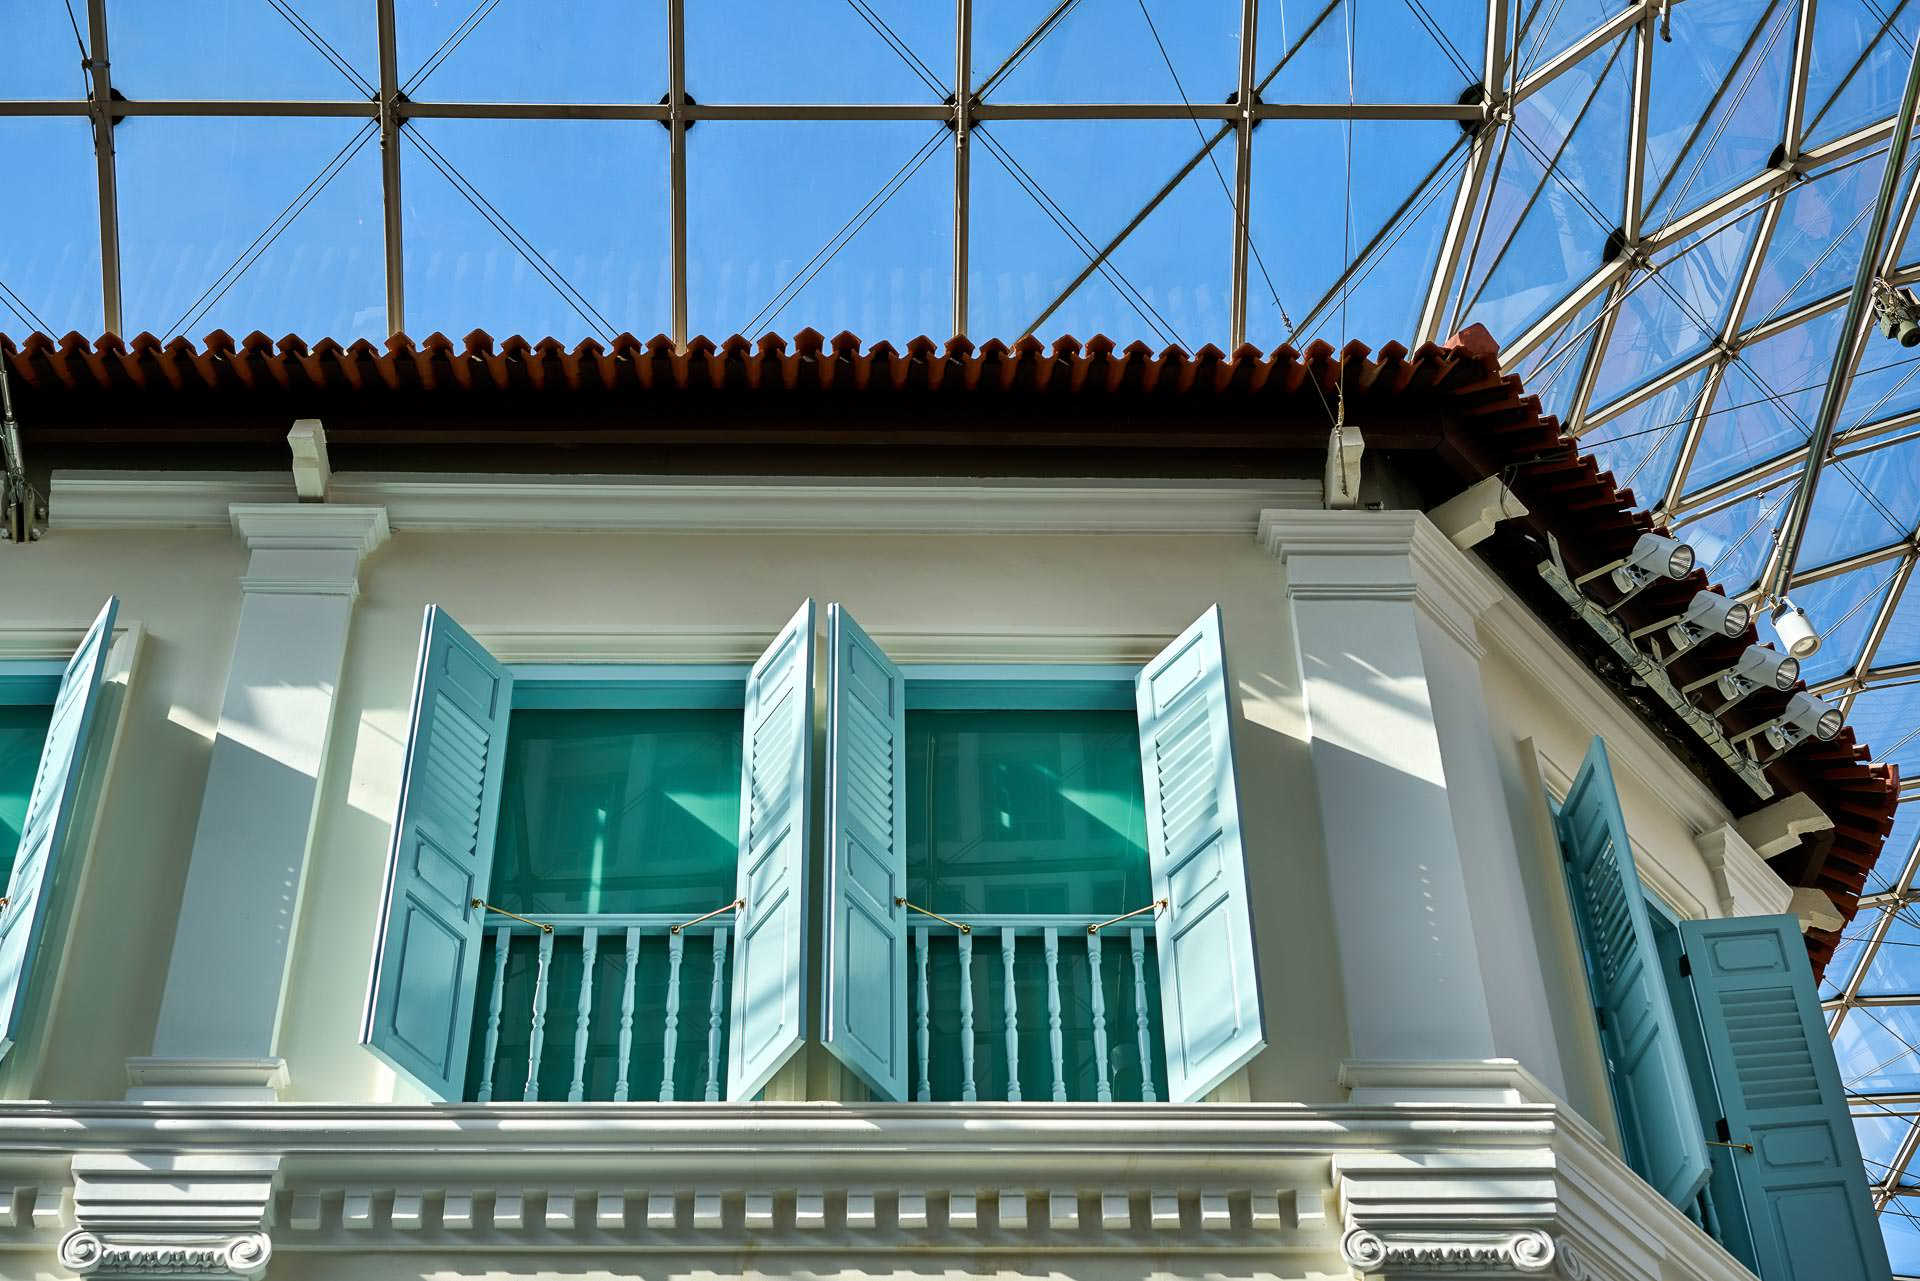 architectural photography focusing on blue shutters on a high floor under glass ceiling